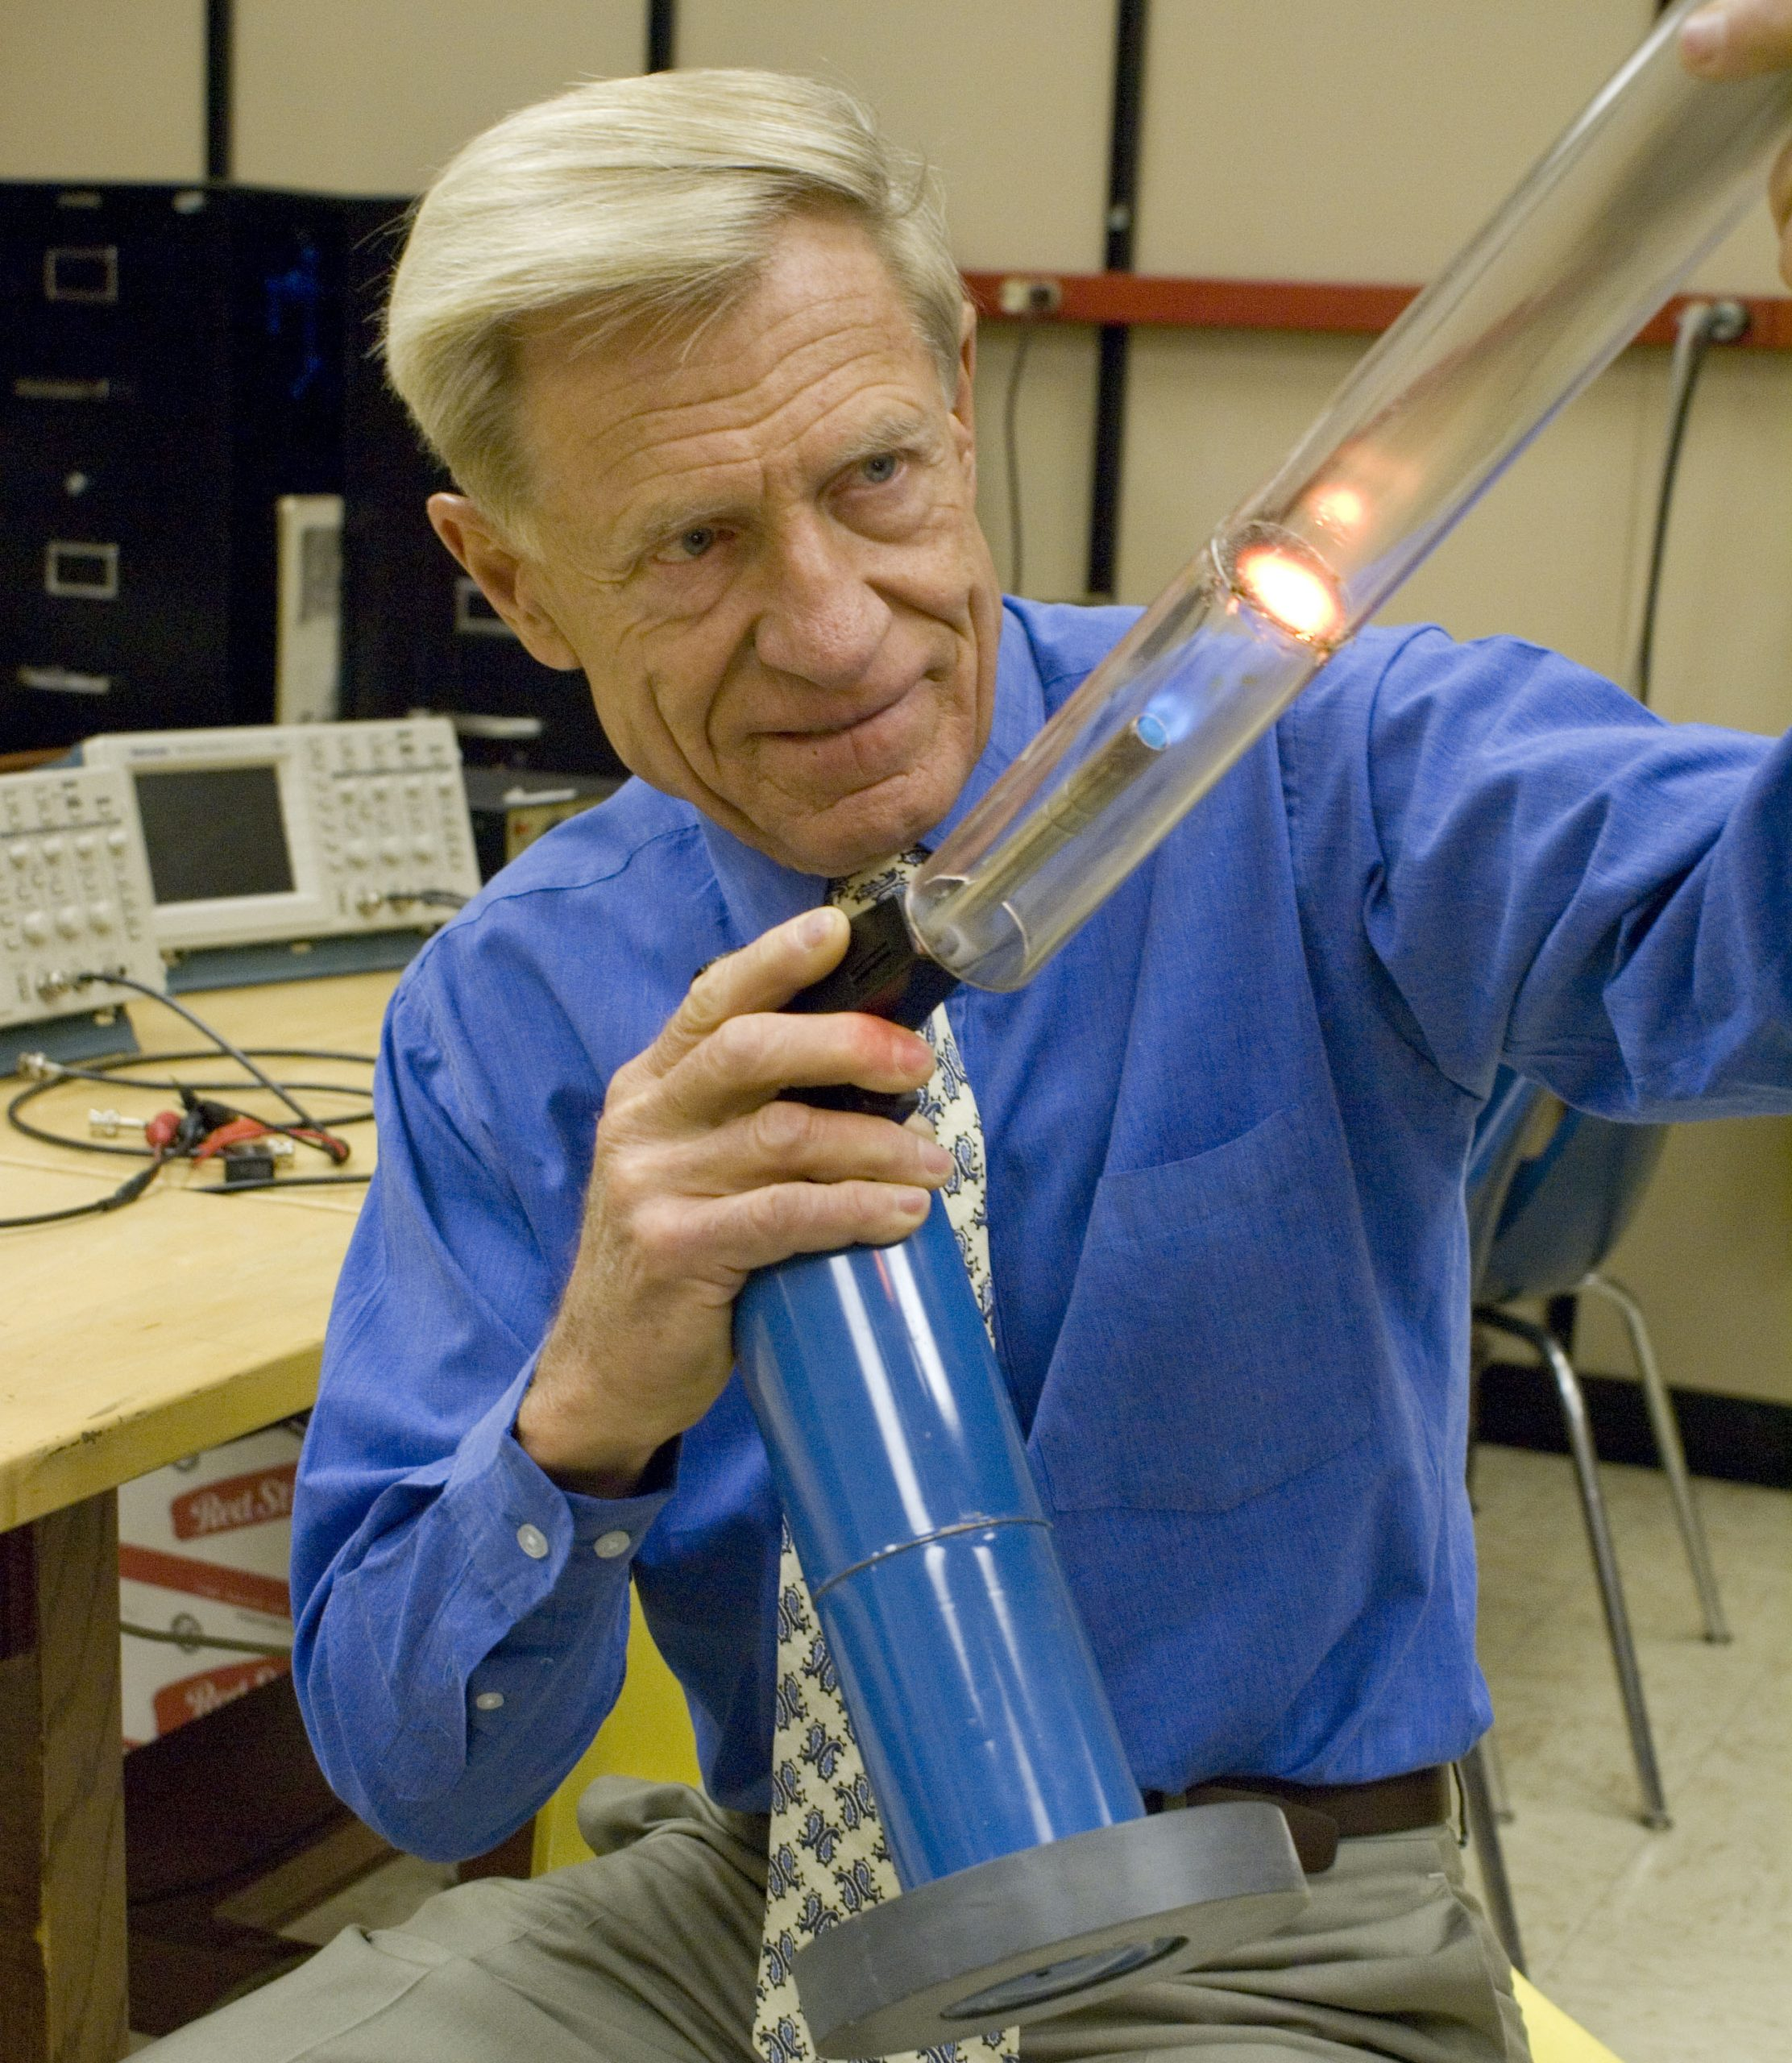 University of Utah physicist Orest Symko demonstrates how heat can be converted into sound by using a blowtorch to heat a metallic screen inside a plastic tube, which then produces a loud tone, similar to when air is blown into a flute. Symko and his students are developing much smaller devices that not only convert heat to sound, but then use the sound to generate electricity. The devices may be used to cool electronics, harness solar energy in a new way, and conserve energy by changing waste heat into electric power.